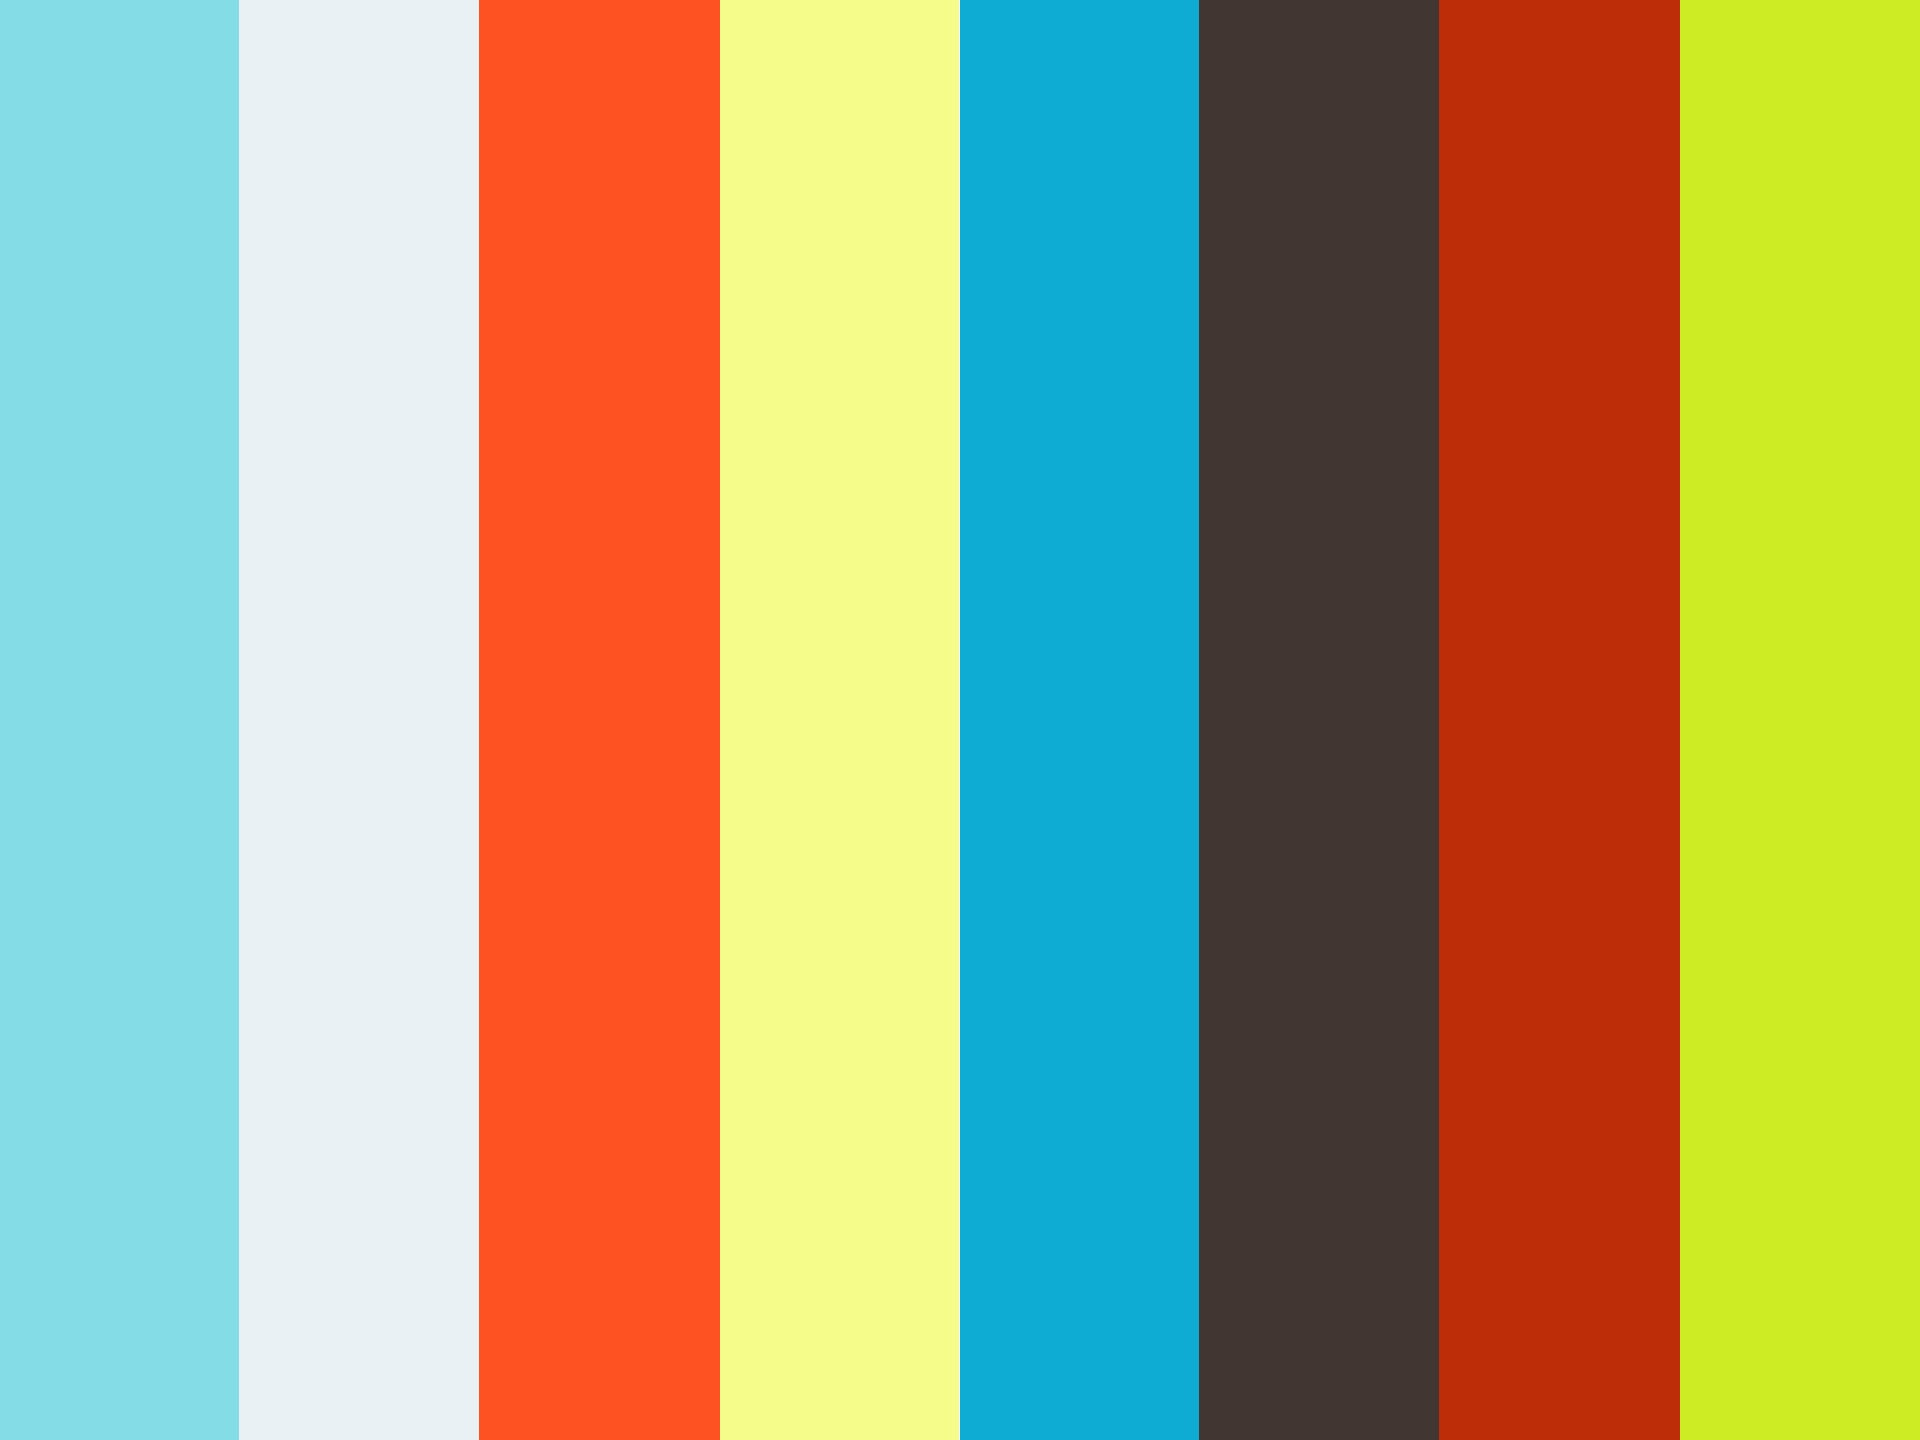 Baseline T-status Predicts Early Tumor Regrowth after WW following cCR and nCRT 2017